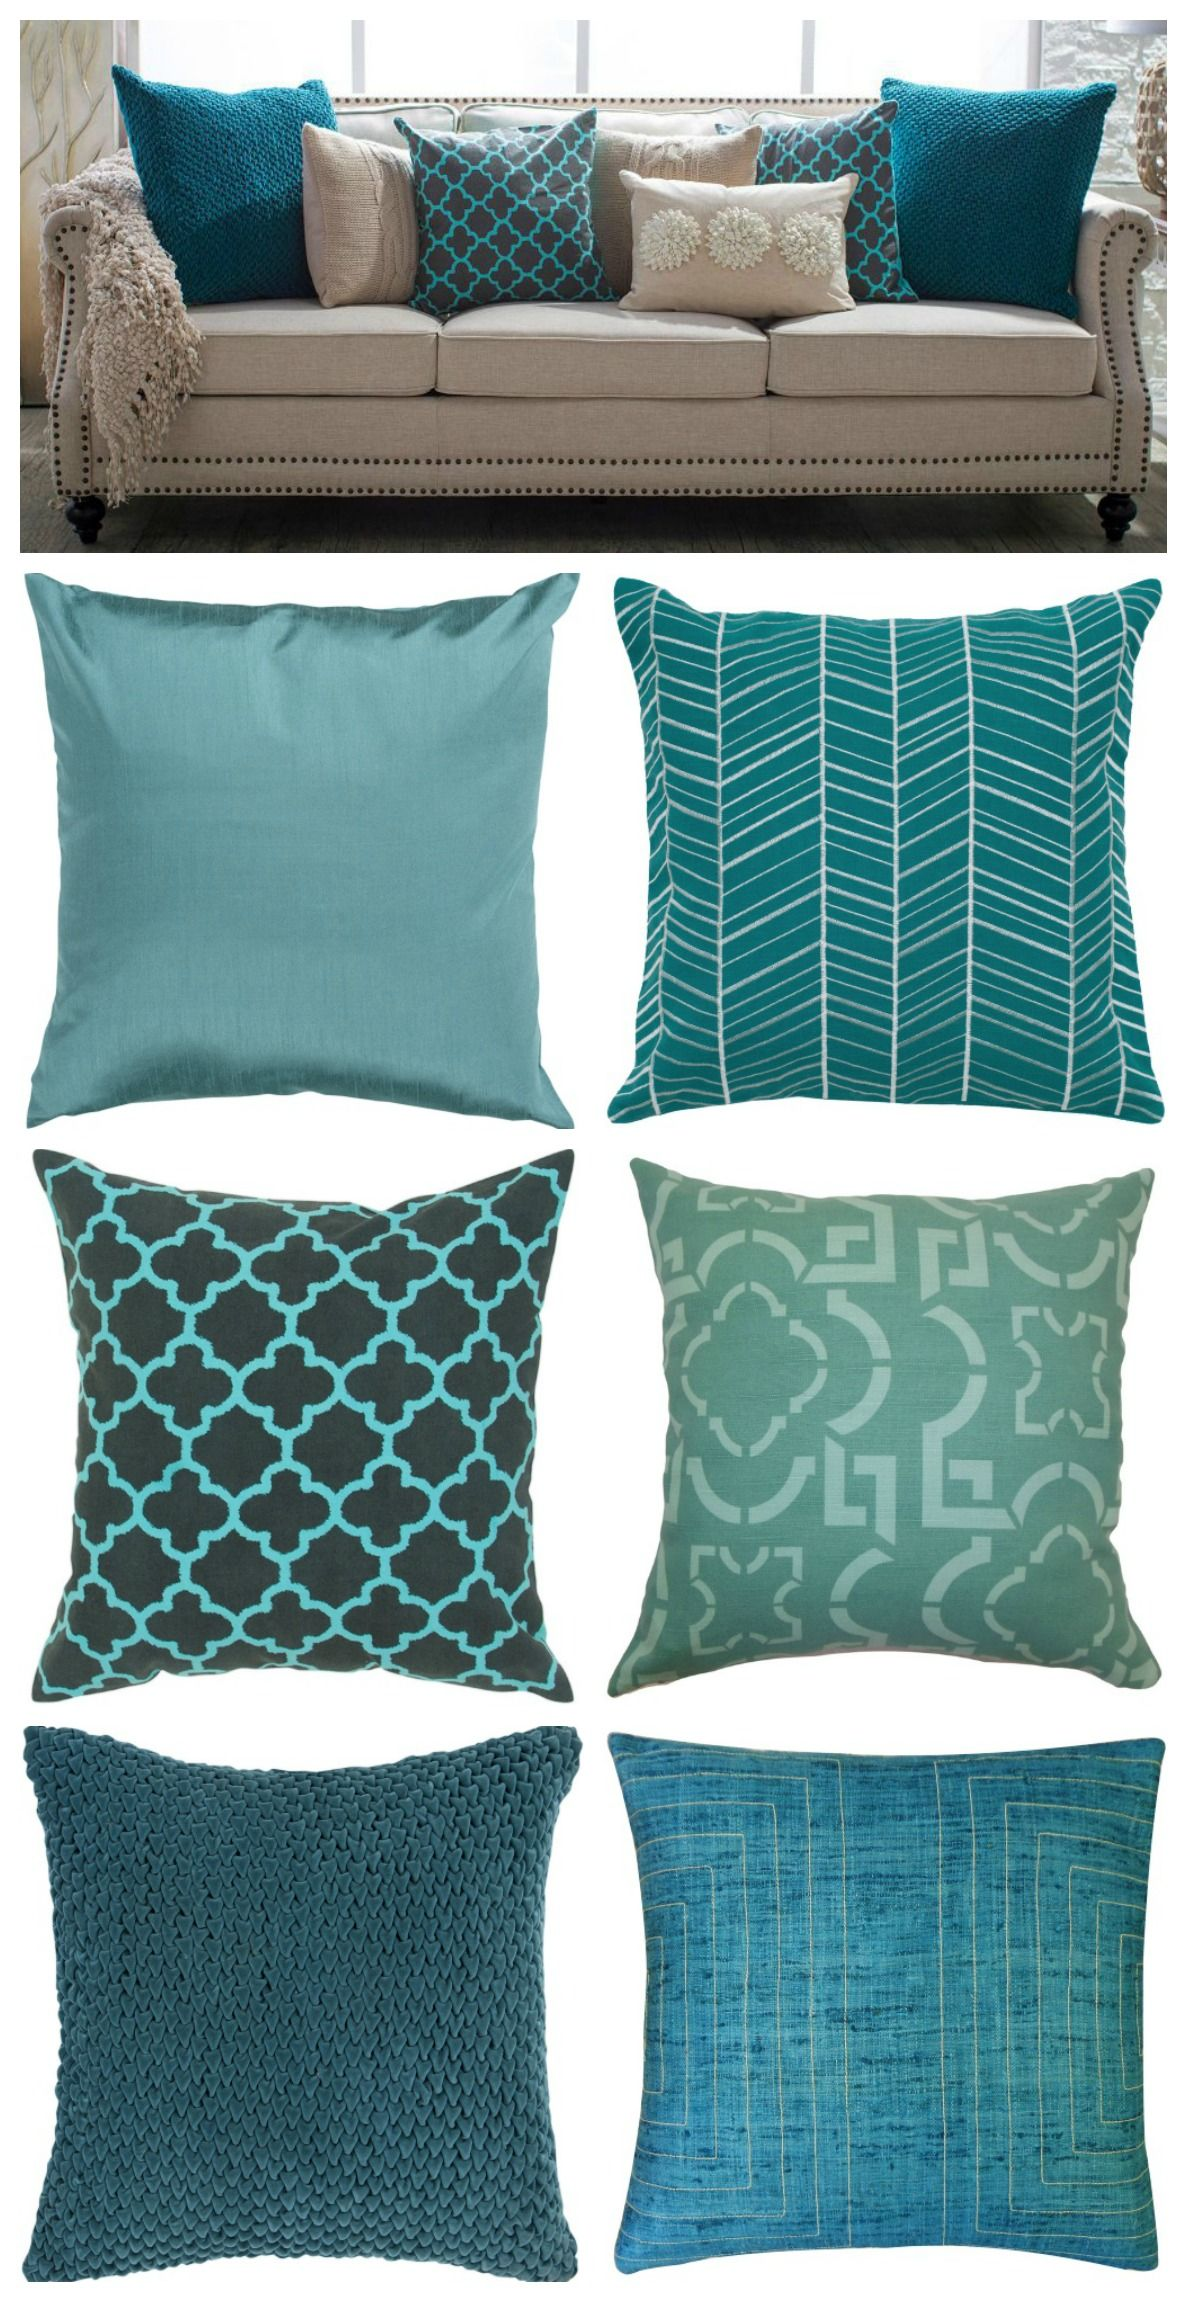 Teal Pillows Home Decor Living Room Decor Pillows